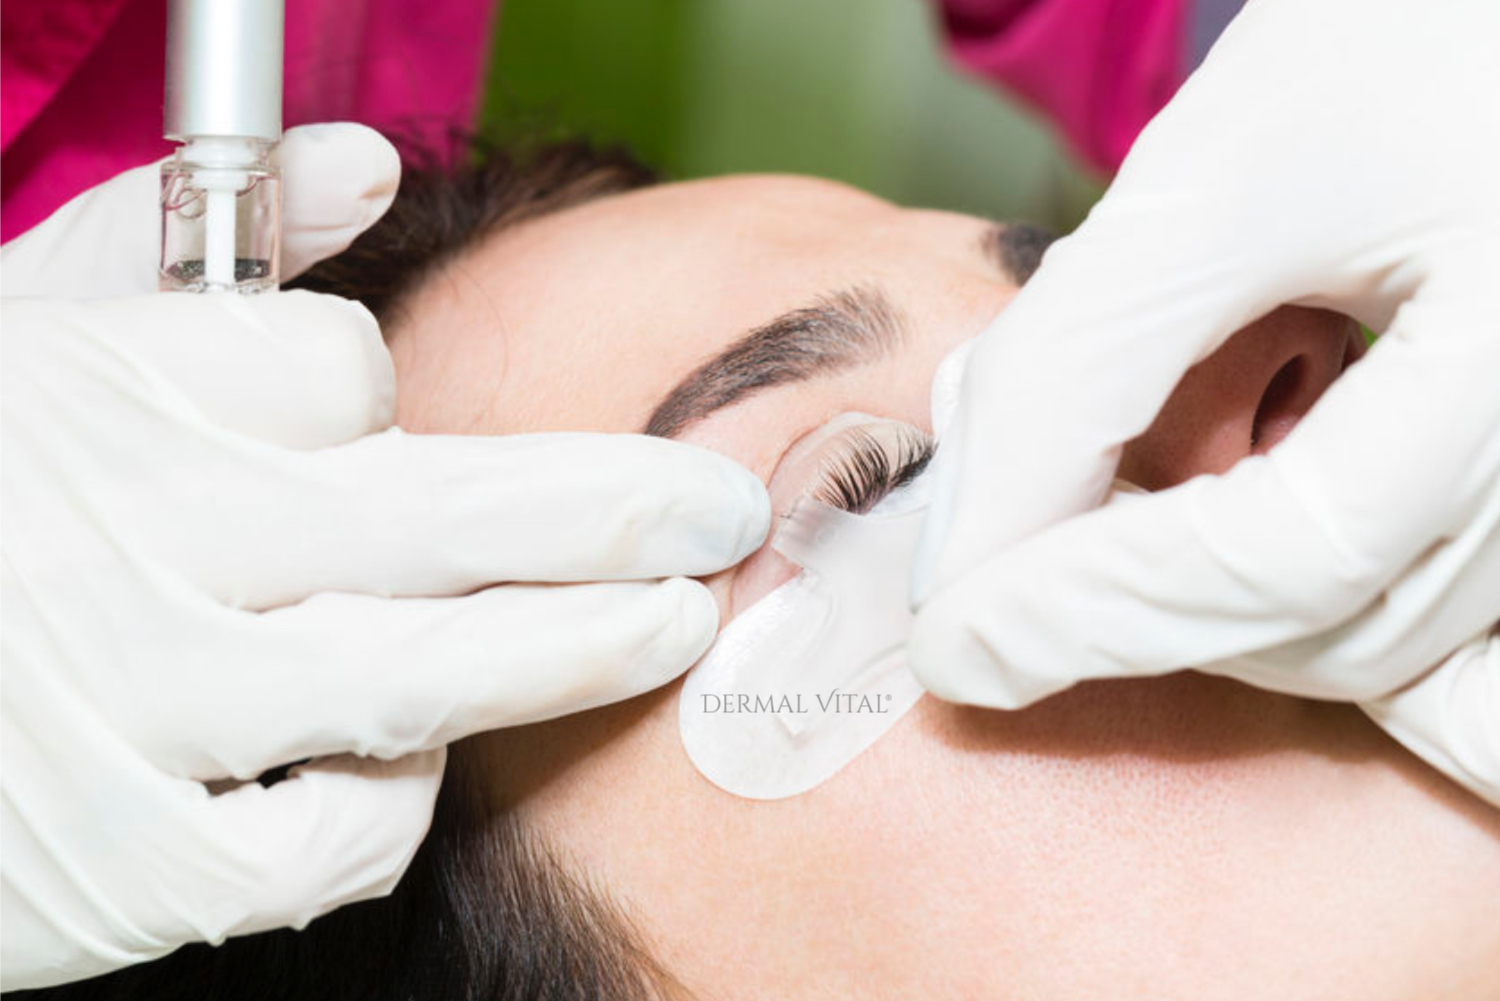 Wimpernlifting Y Applikator in Anwendung